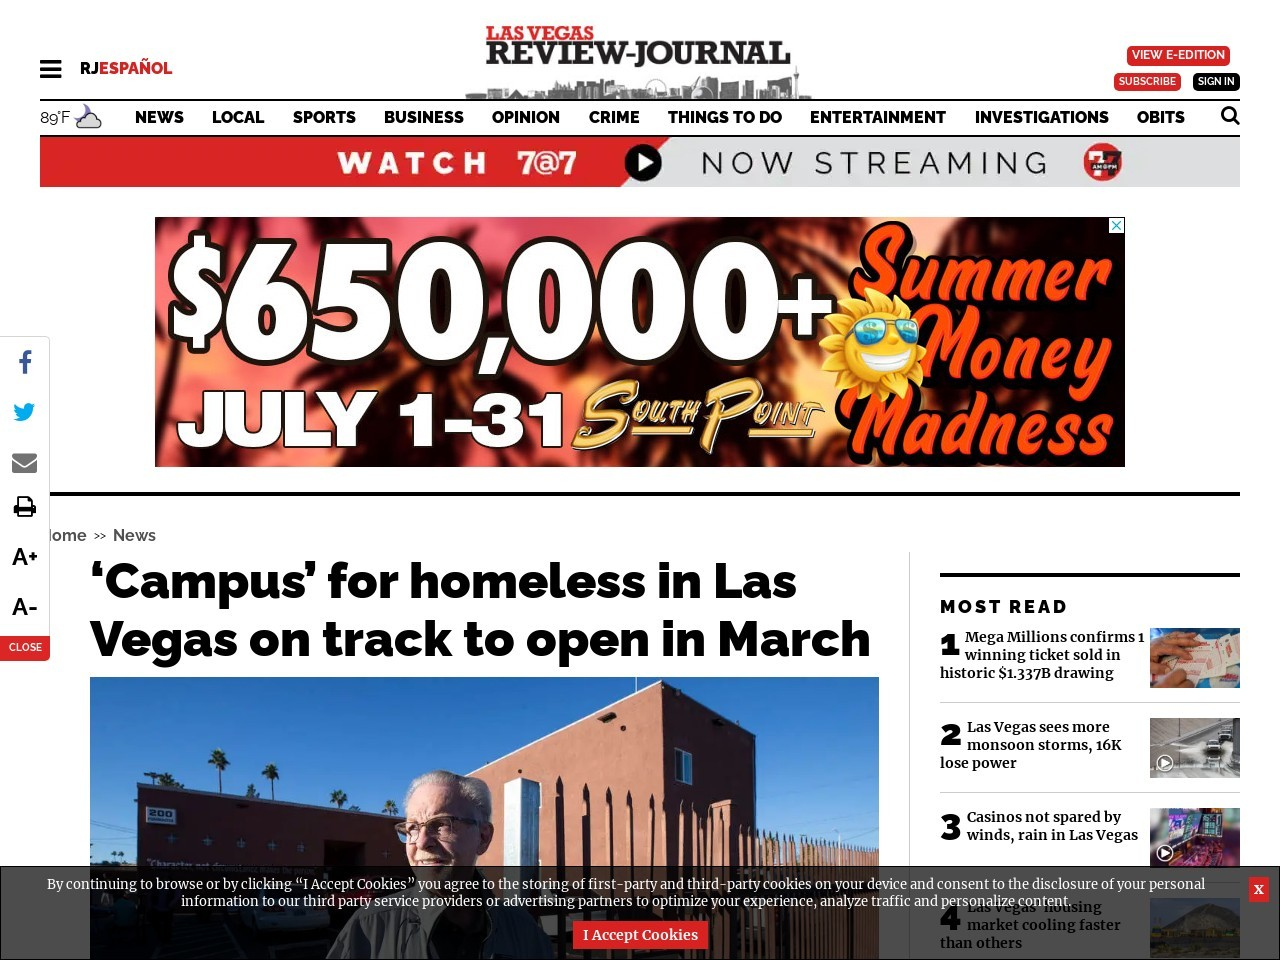 'Campus' for homeless in Las Vegas on track to open in March